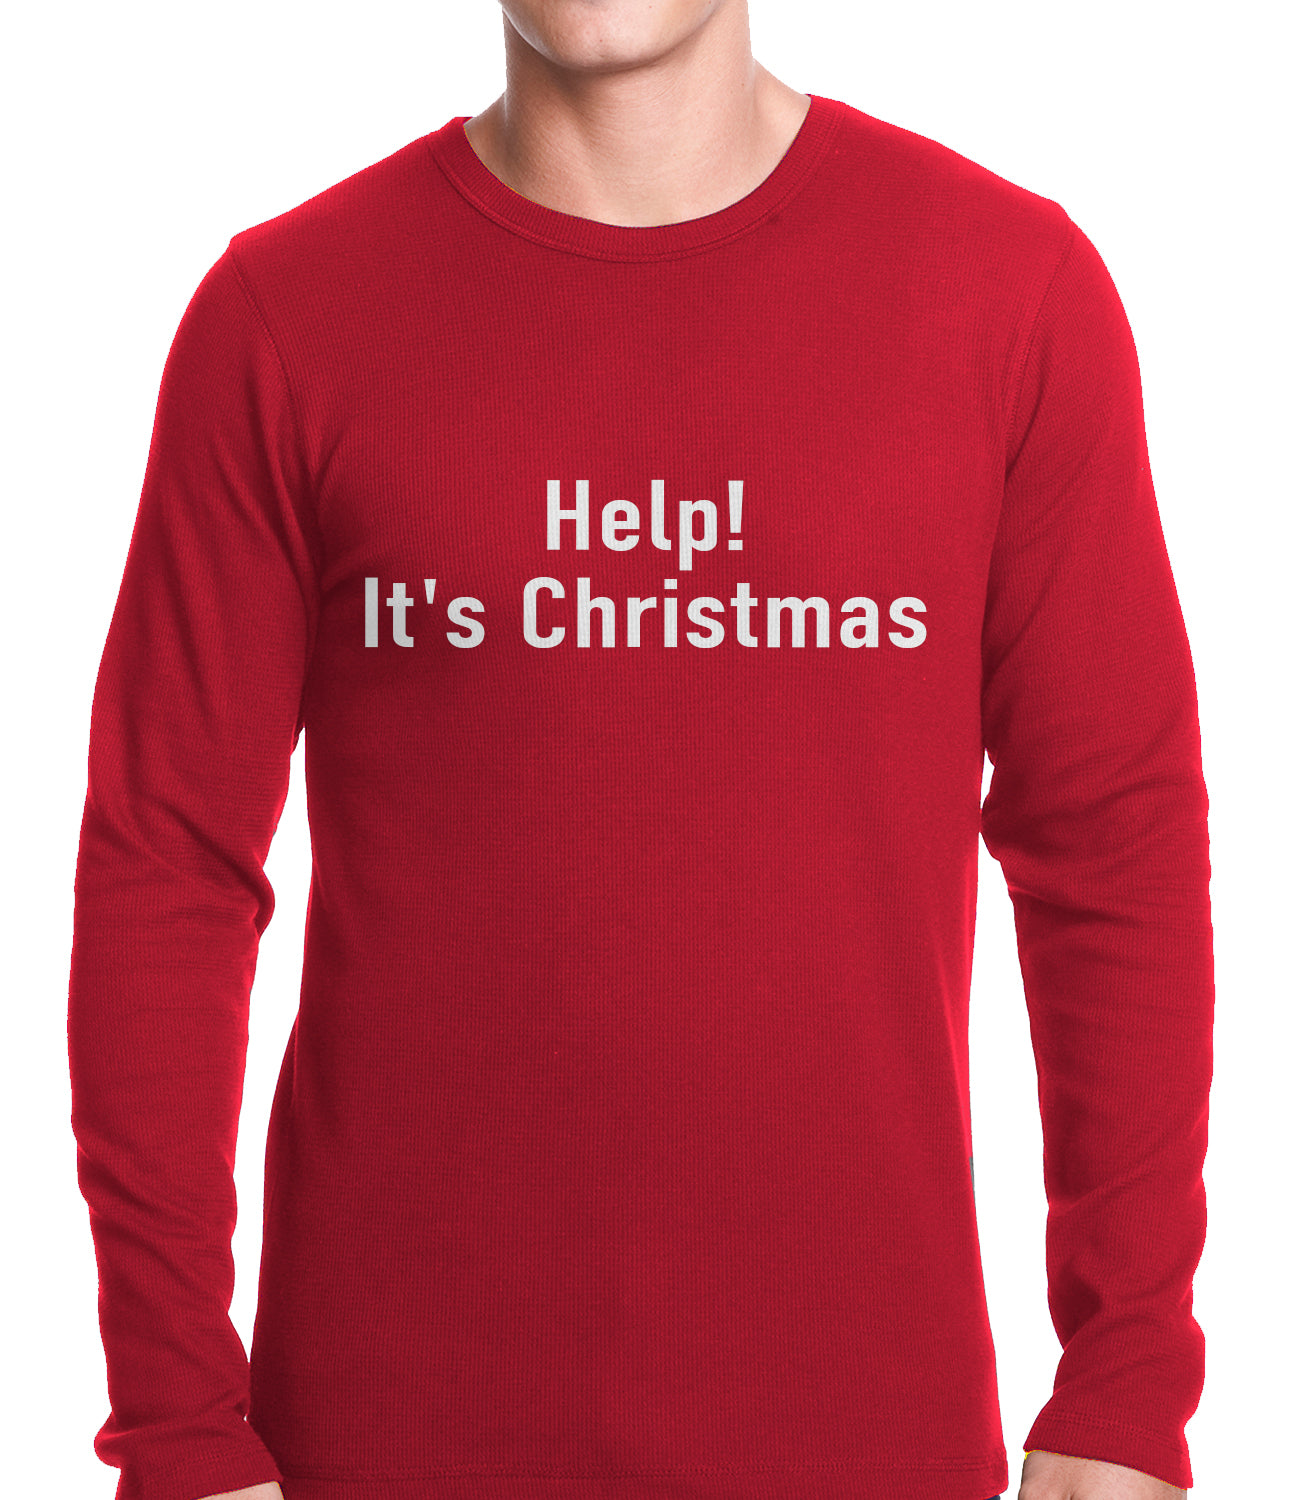 Help! It's Christmas Funny Holiday Thermal Shirt